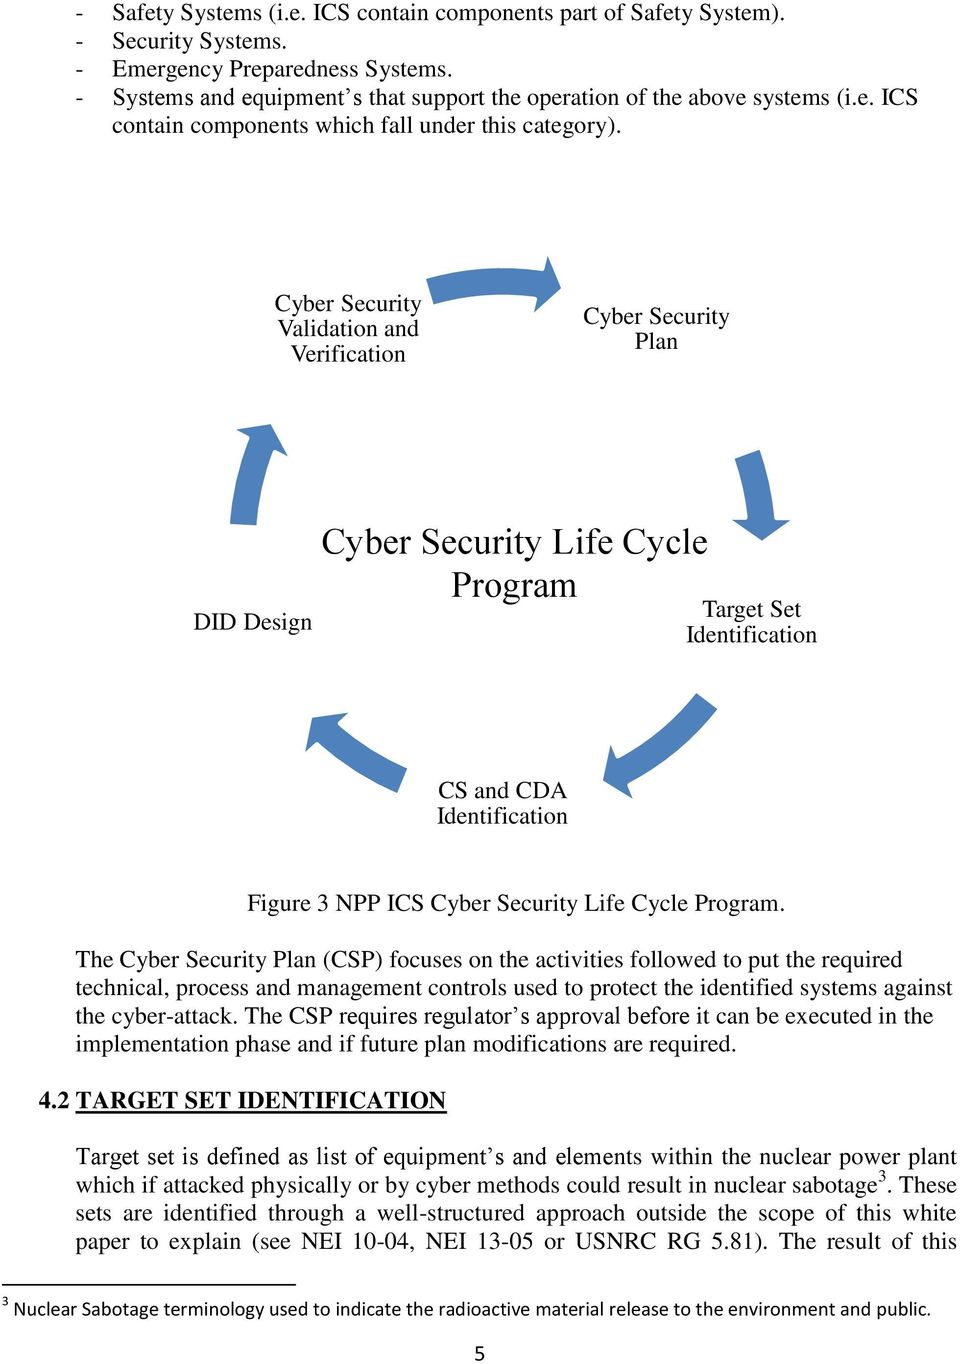 Cyber Security Validation and Verification Cyber Security Plan DID Design Cyber Security Life Cycle Program Target Set Identification CS and CDA Identification Figure 3 NPP ICS Cyber Security Life